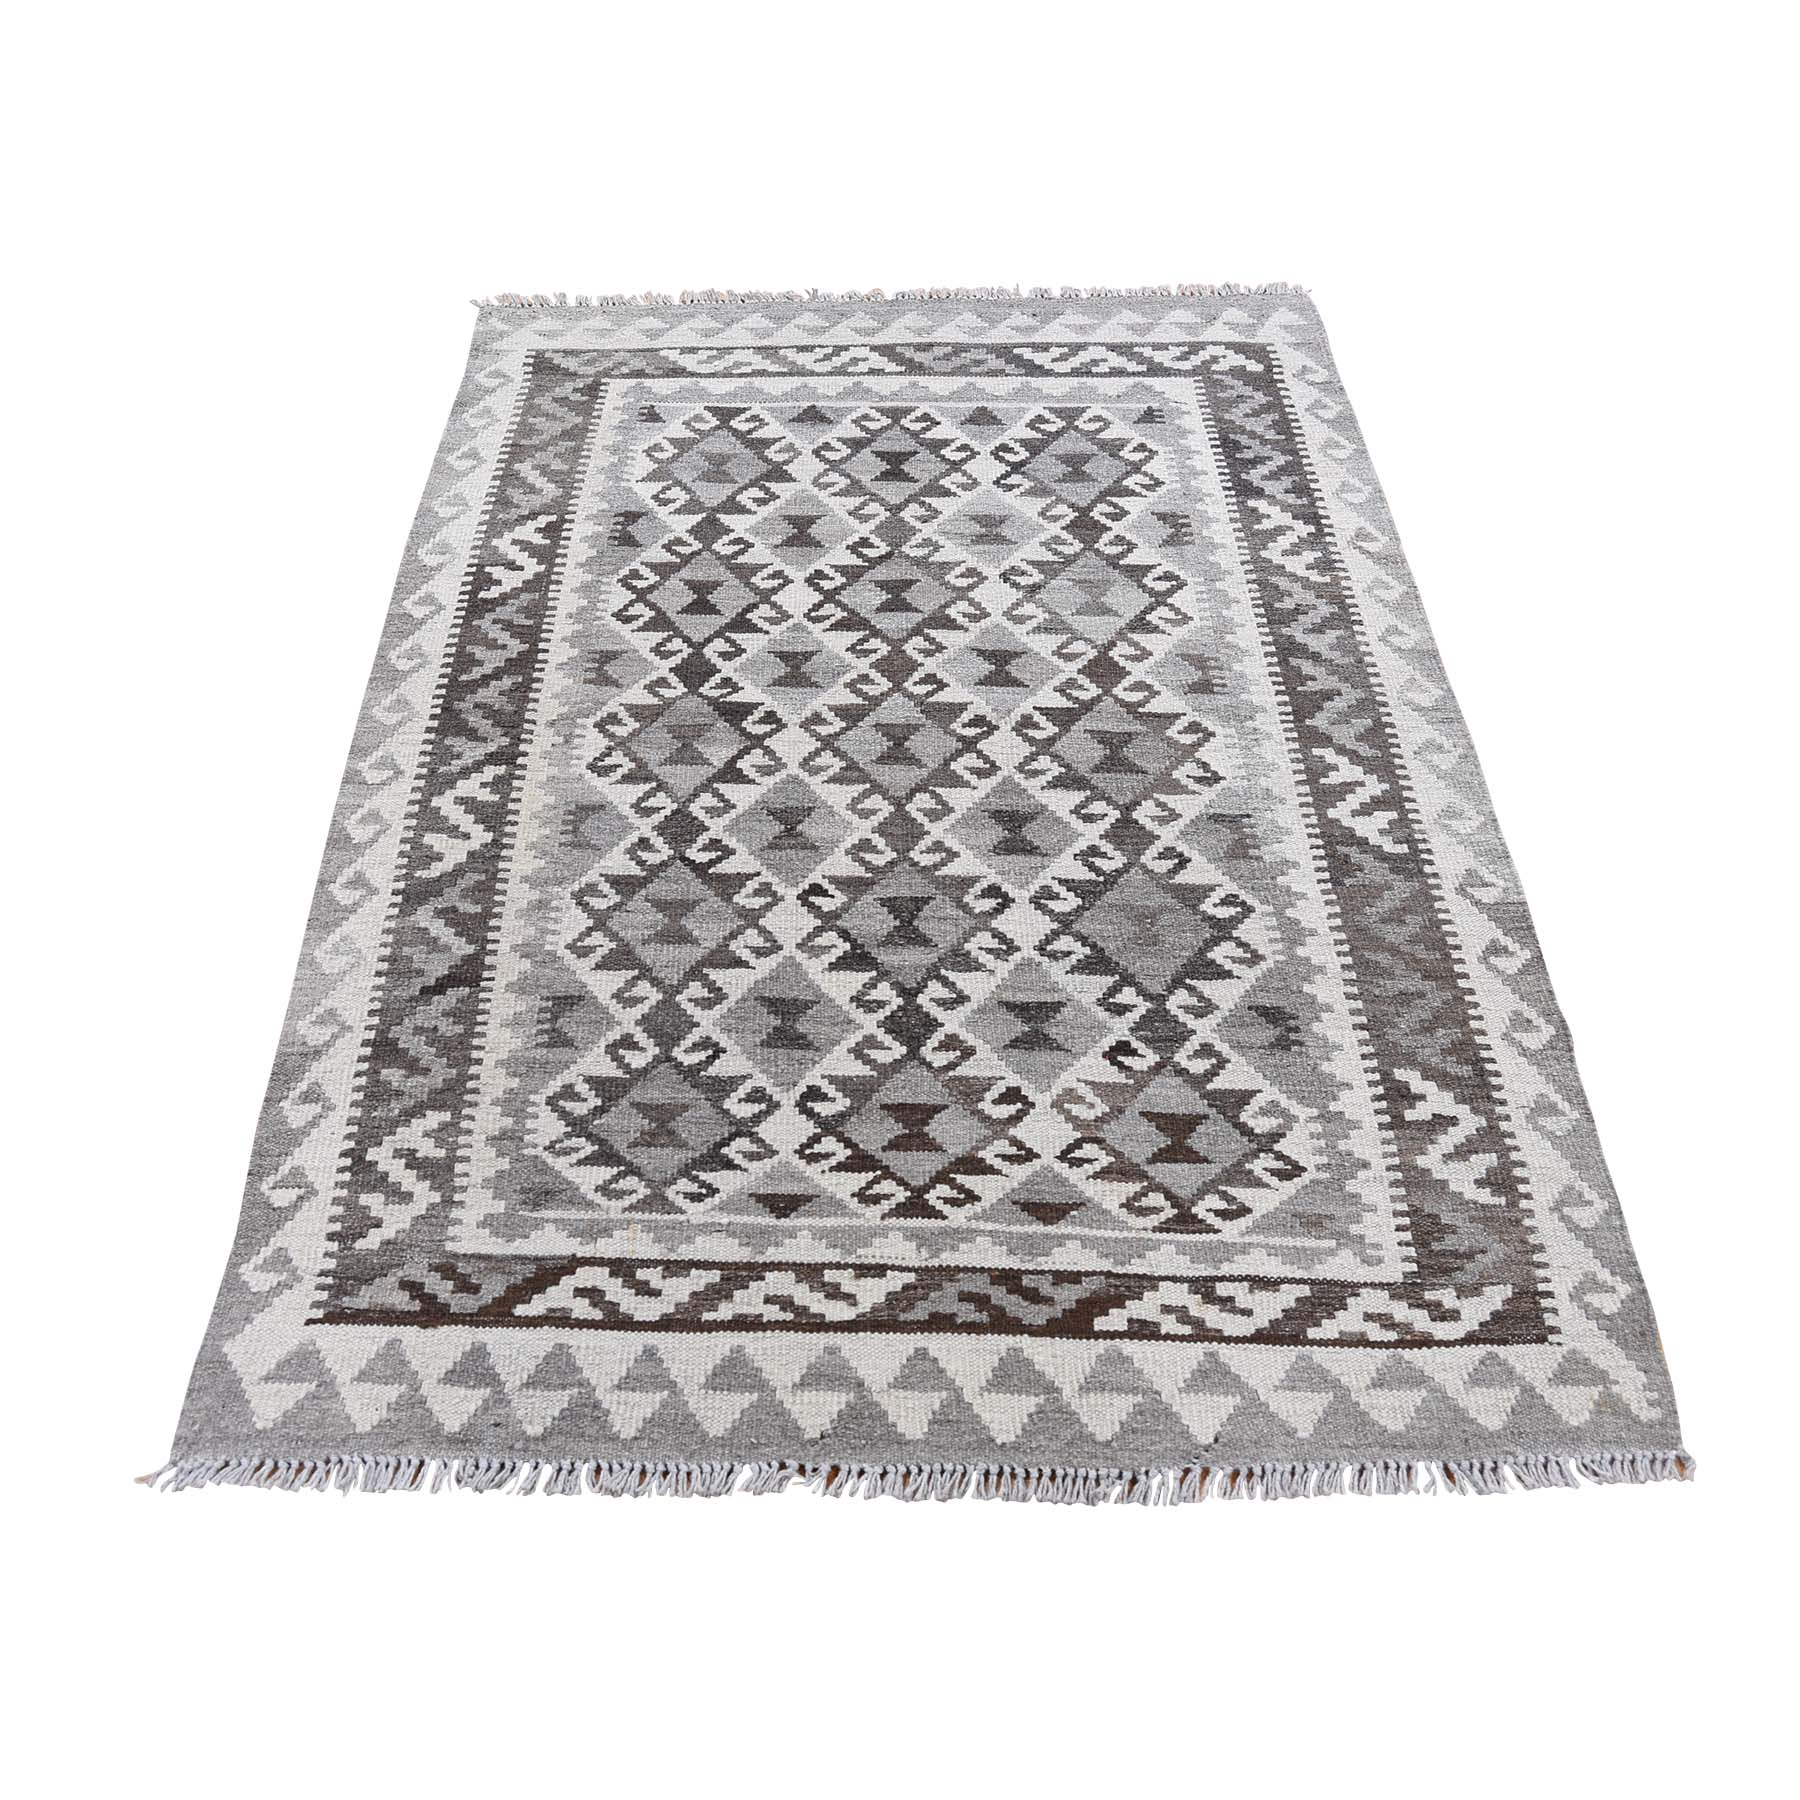 "3'4""X5'2"" Undyed Natural Wool Afghan Kilim Reversible Hand Woven Oriental Rug moad6edd"